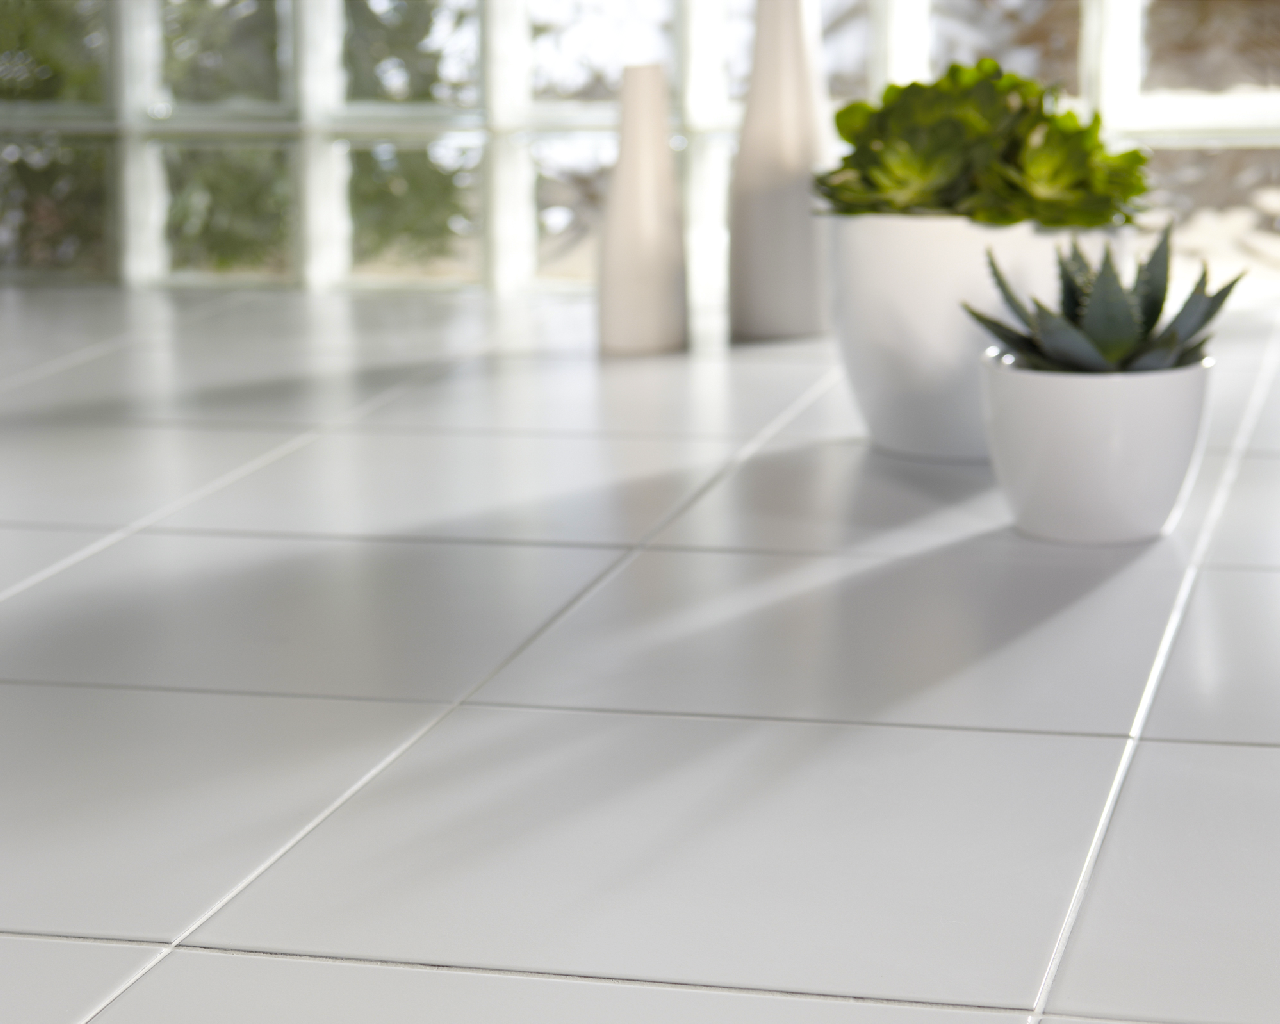 Difference between glazed and unglazed tiles httpbit11tcxeo pure white quartz floor tiles ceramic or porcelain tile flooring is very durable and a great investment in your home dailygadgetfo Image collections